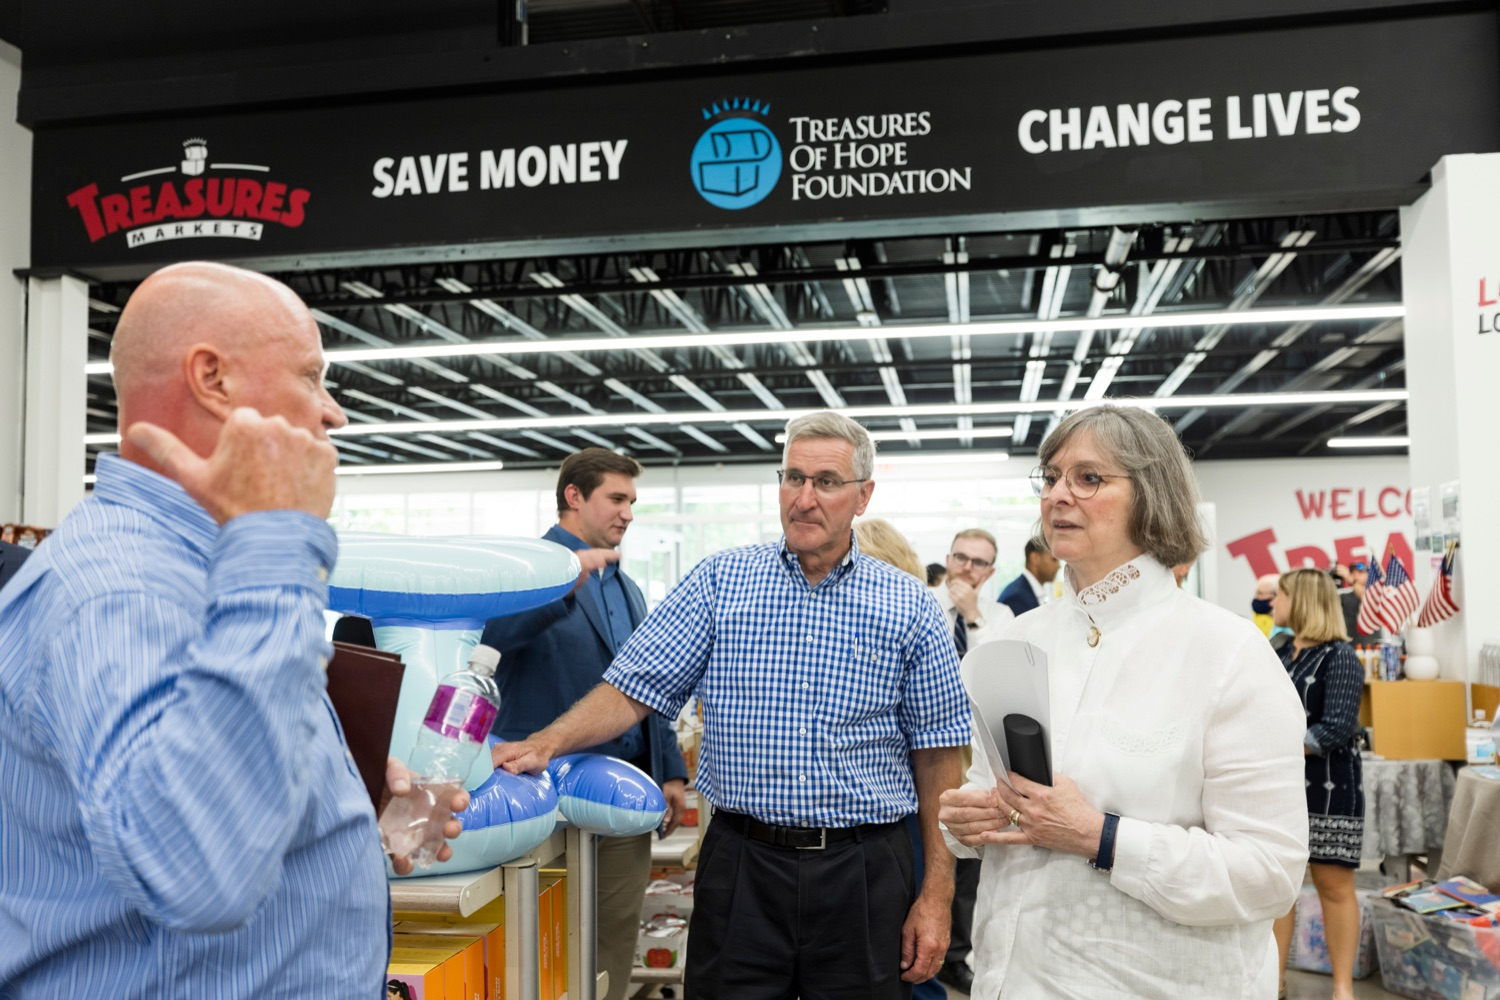 """<a href=""""https://filesource.wostreaming.net/commonwealthofpa/photo/18939_AGRIC_FL_Urban_Farms_NK_018.jpg"""" target=""""_blank"""">⇣Download Photo<br></a>Mike Mitchell, Treasures Markets chairman, left, speaks with PA Dept. of Agriculture Secretary Russell Redding, center, and Pennsylvania First Lady Frances Wolf, inside Treasures Markets in Lancaster on Monday, July 19, 2021. The Treasures of Hope Foundation and Treasures Markets were formed in February 2018 to bring back groceries to Lancaster City. Treasures of Hope is a 501C3 and Treasures Markets is an LLC social enterprise under Treasures of Hope. All profits from Treasures Markets go to Treasures of Hope which distributes them to other 501C3 organizations that feed the hungry and homeless."""